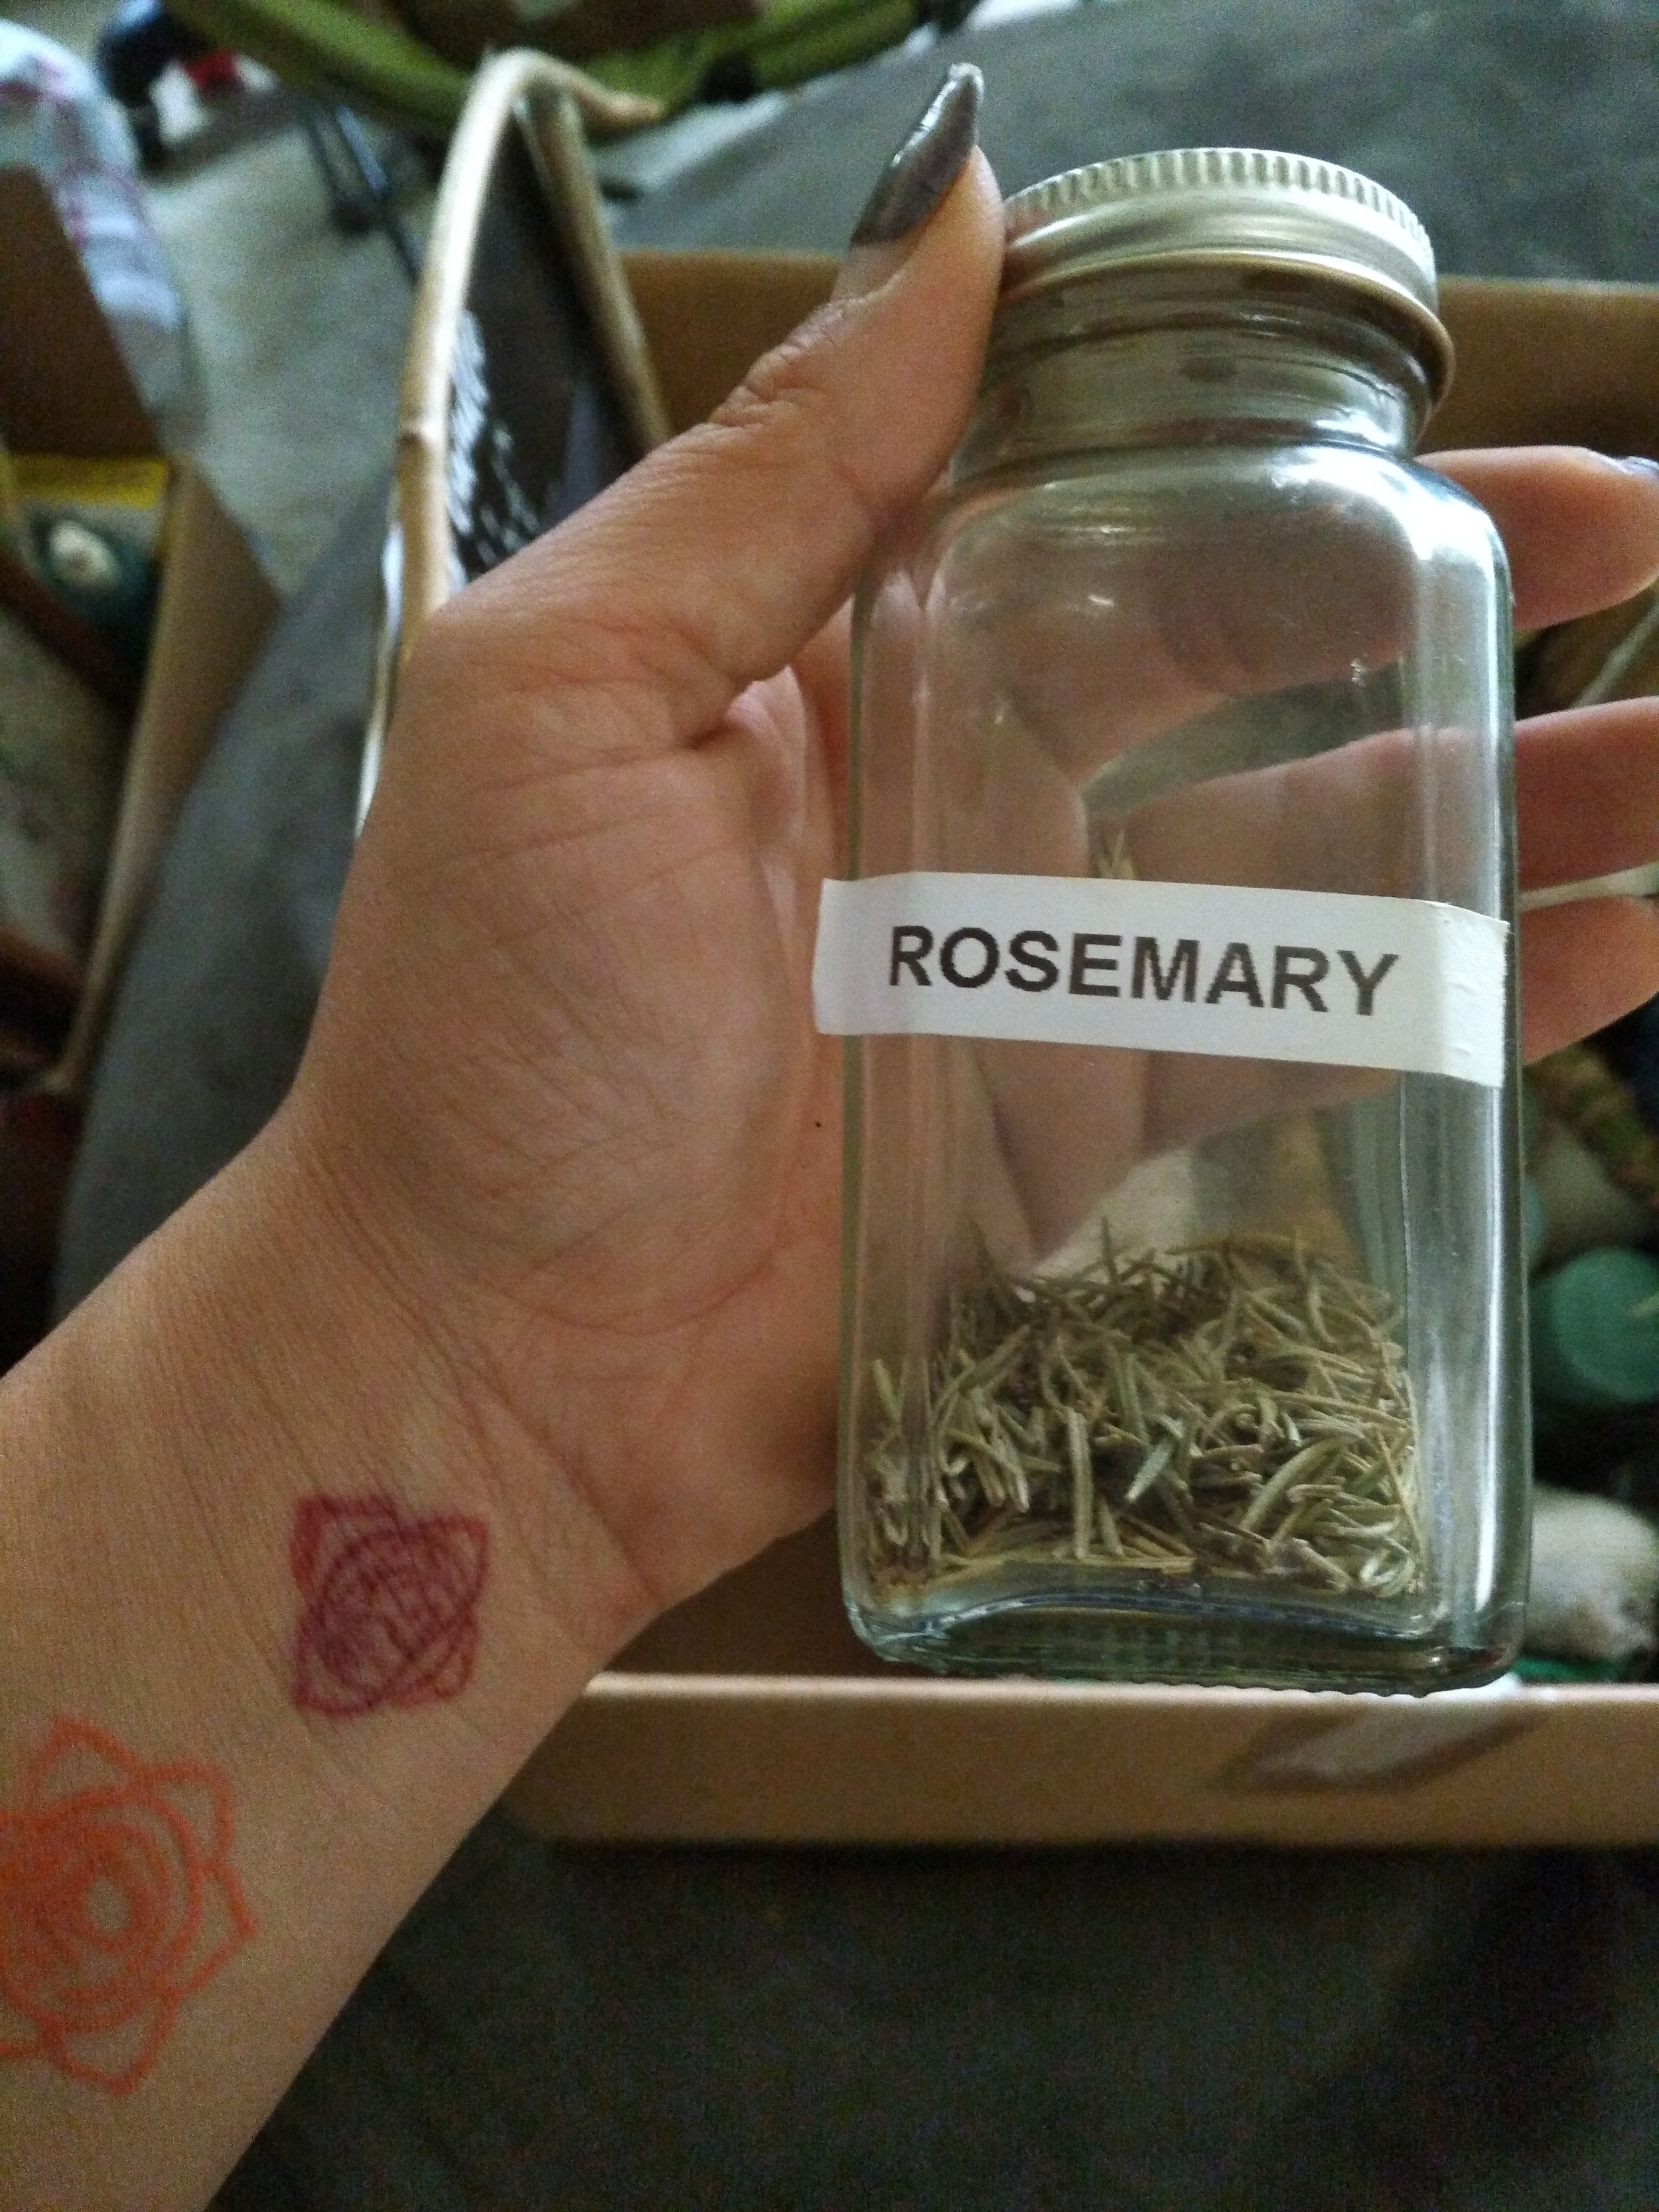 *Optional: Bring along some dried herbs to tuck into cabinets and drawers! For example, bring dried Rosemary to continually purify.